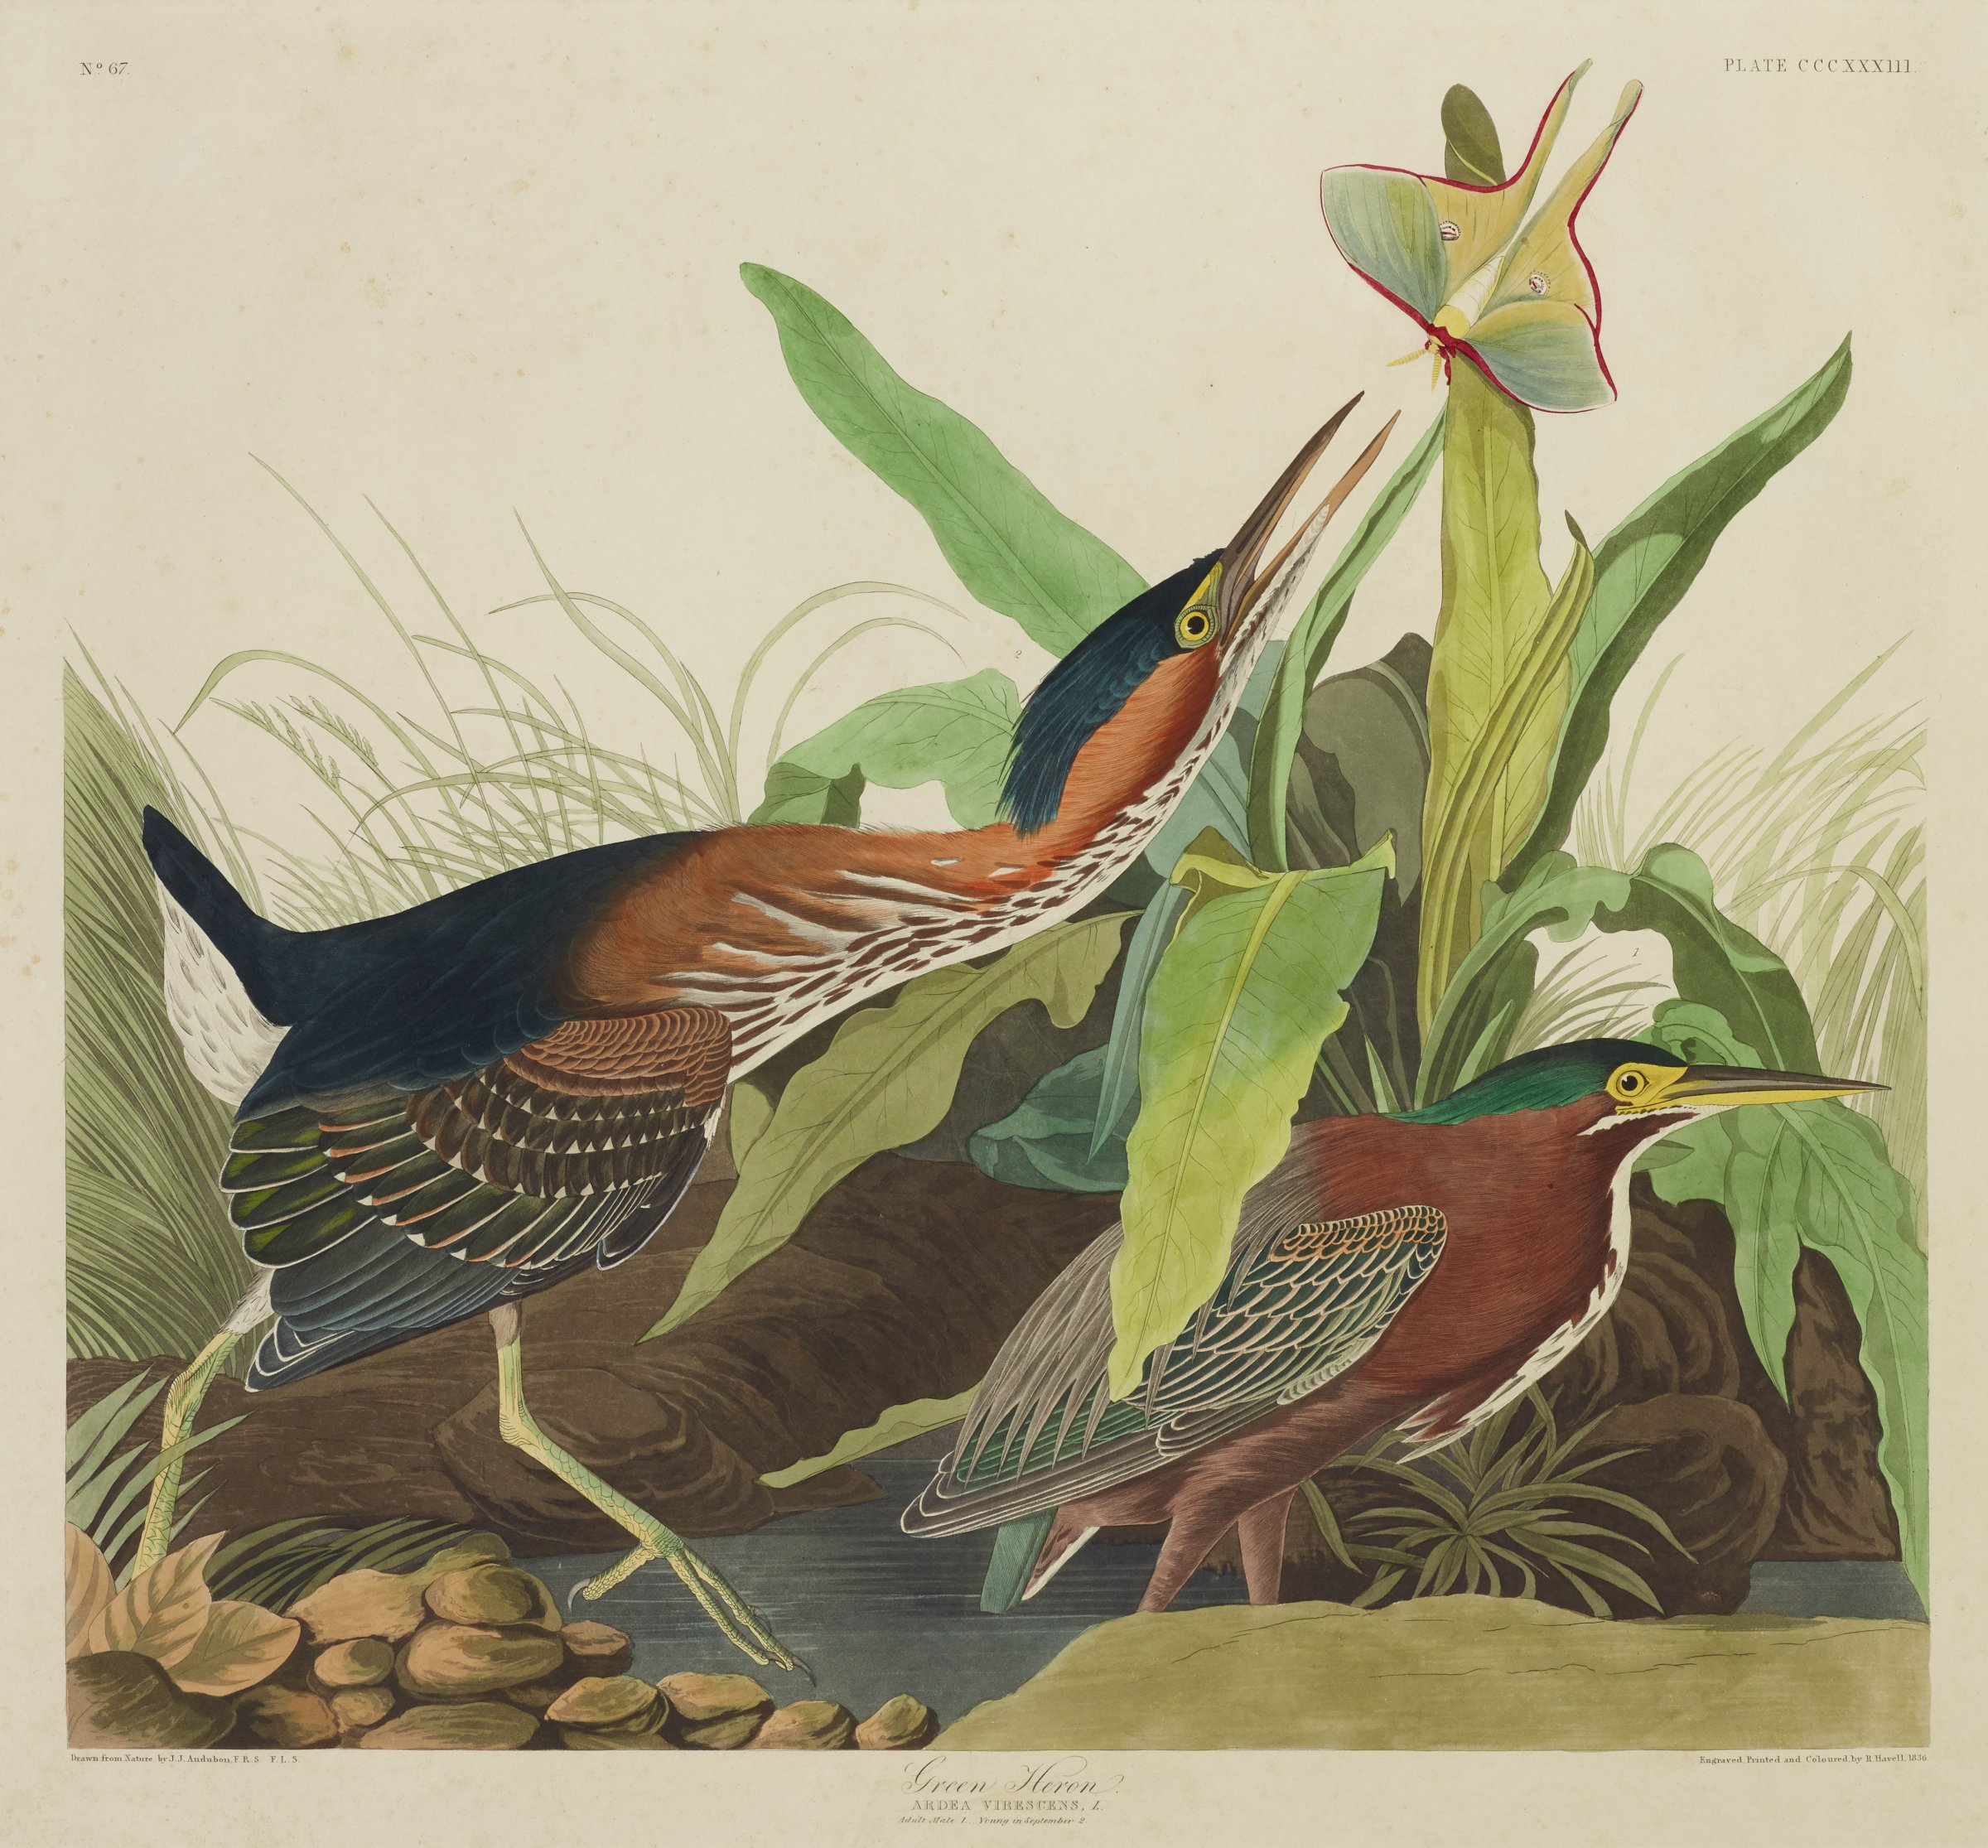 In a landscape of water, rocks, and thick foliage, two herons attempt to catch a moth that flies above them. The herons are characterized by their brown, black, and white feathered bodies with yellow feathers around their eyes, dark green feathers on their heads, and long, pointed beaks. The heron on the left is also characterized by his body shape with an elongated neck and large talons.